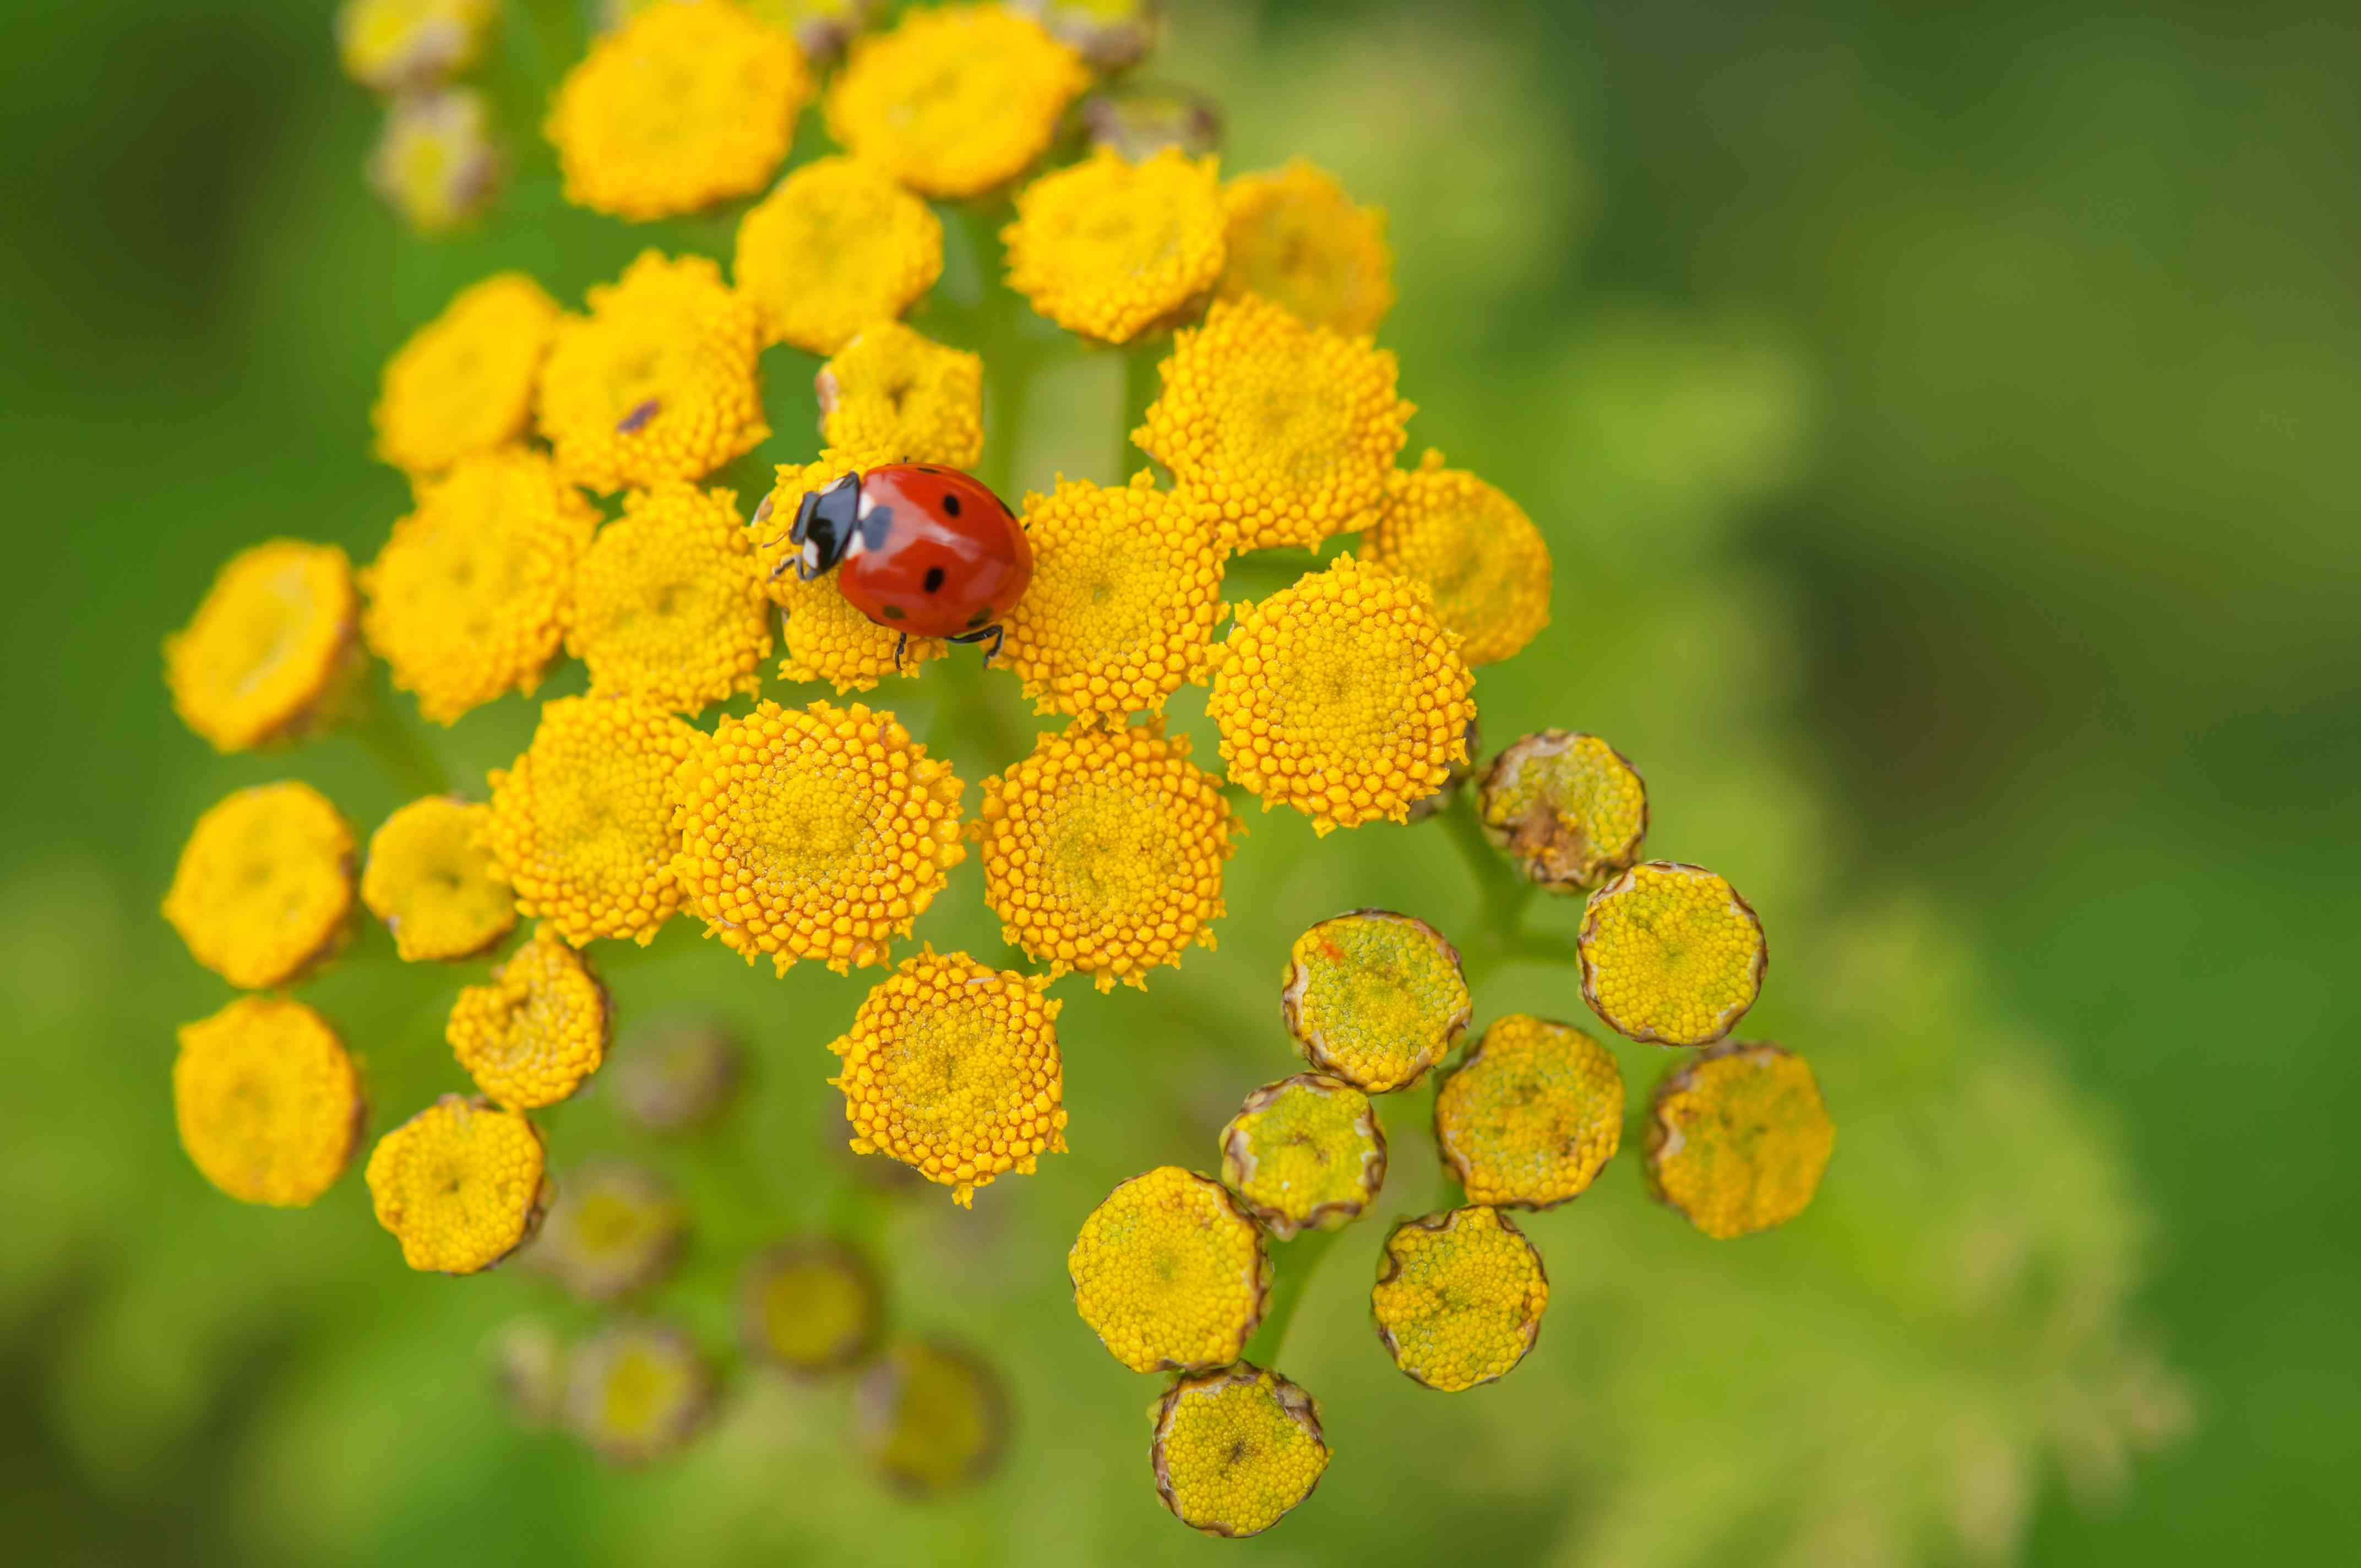 Common tansy plant with yellow button-like flowers and buds with ladybug closeup